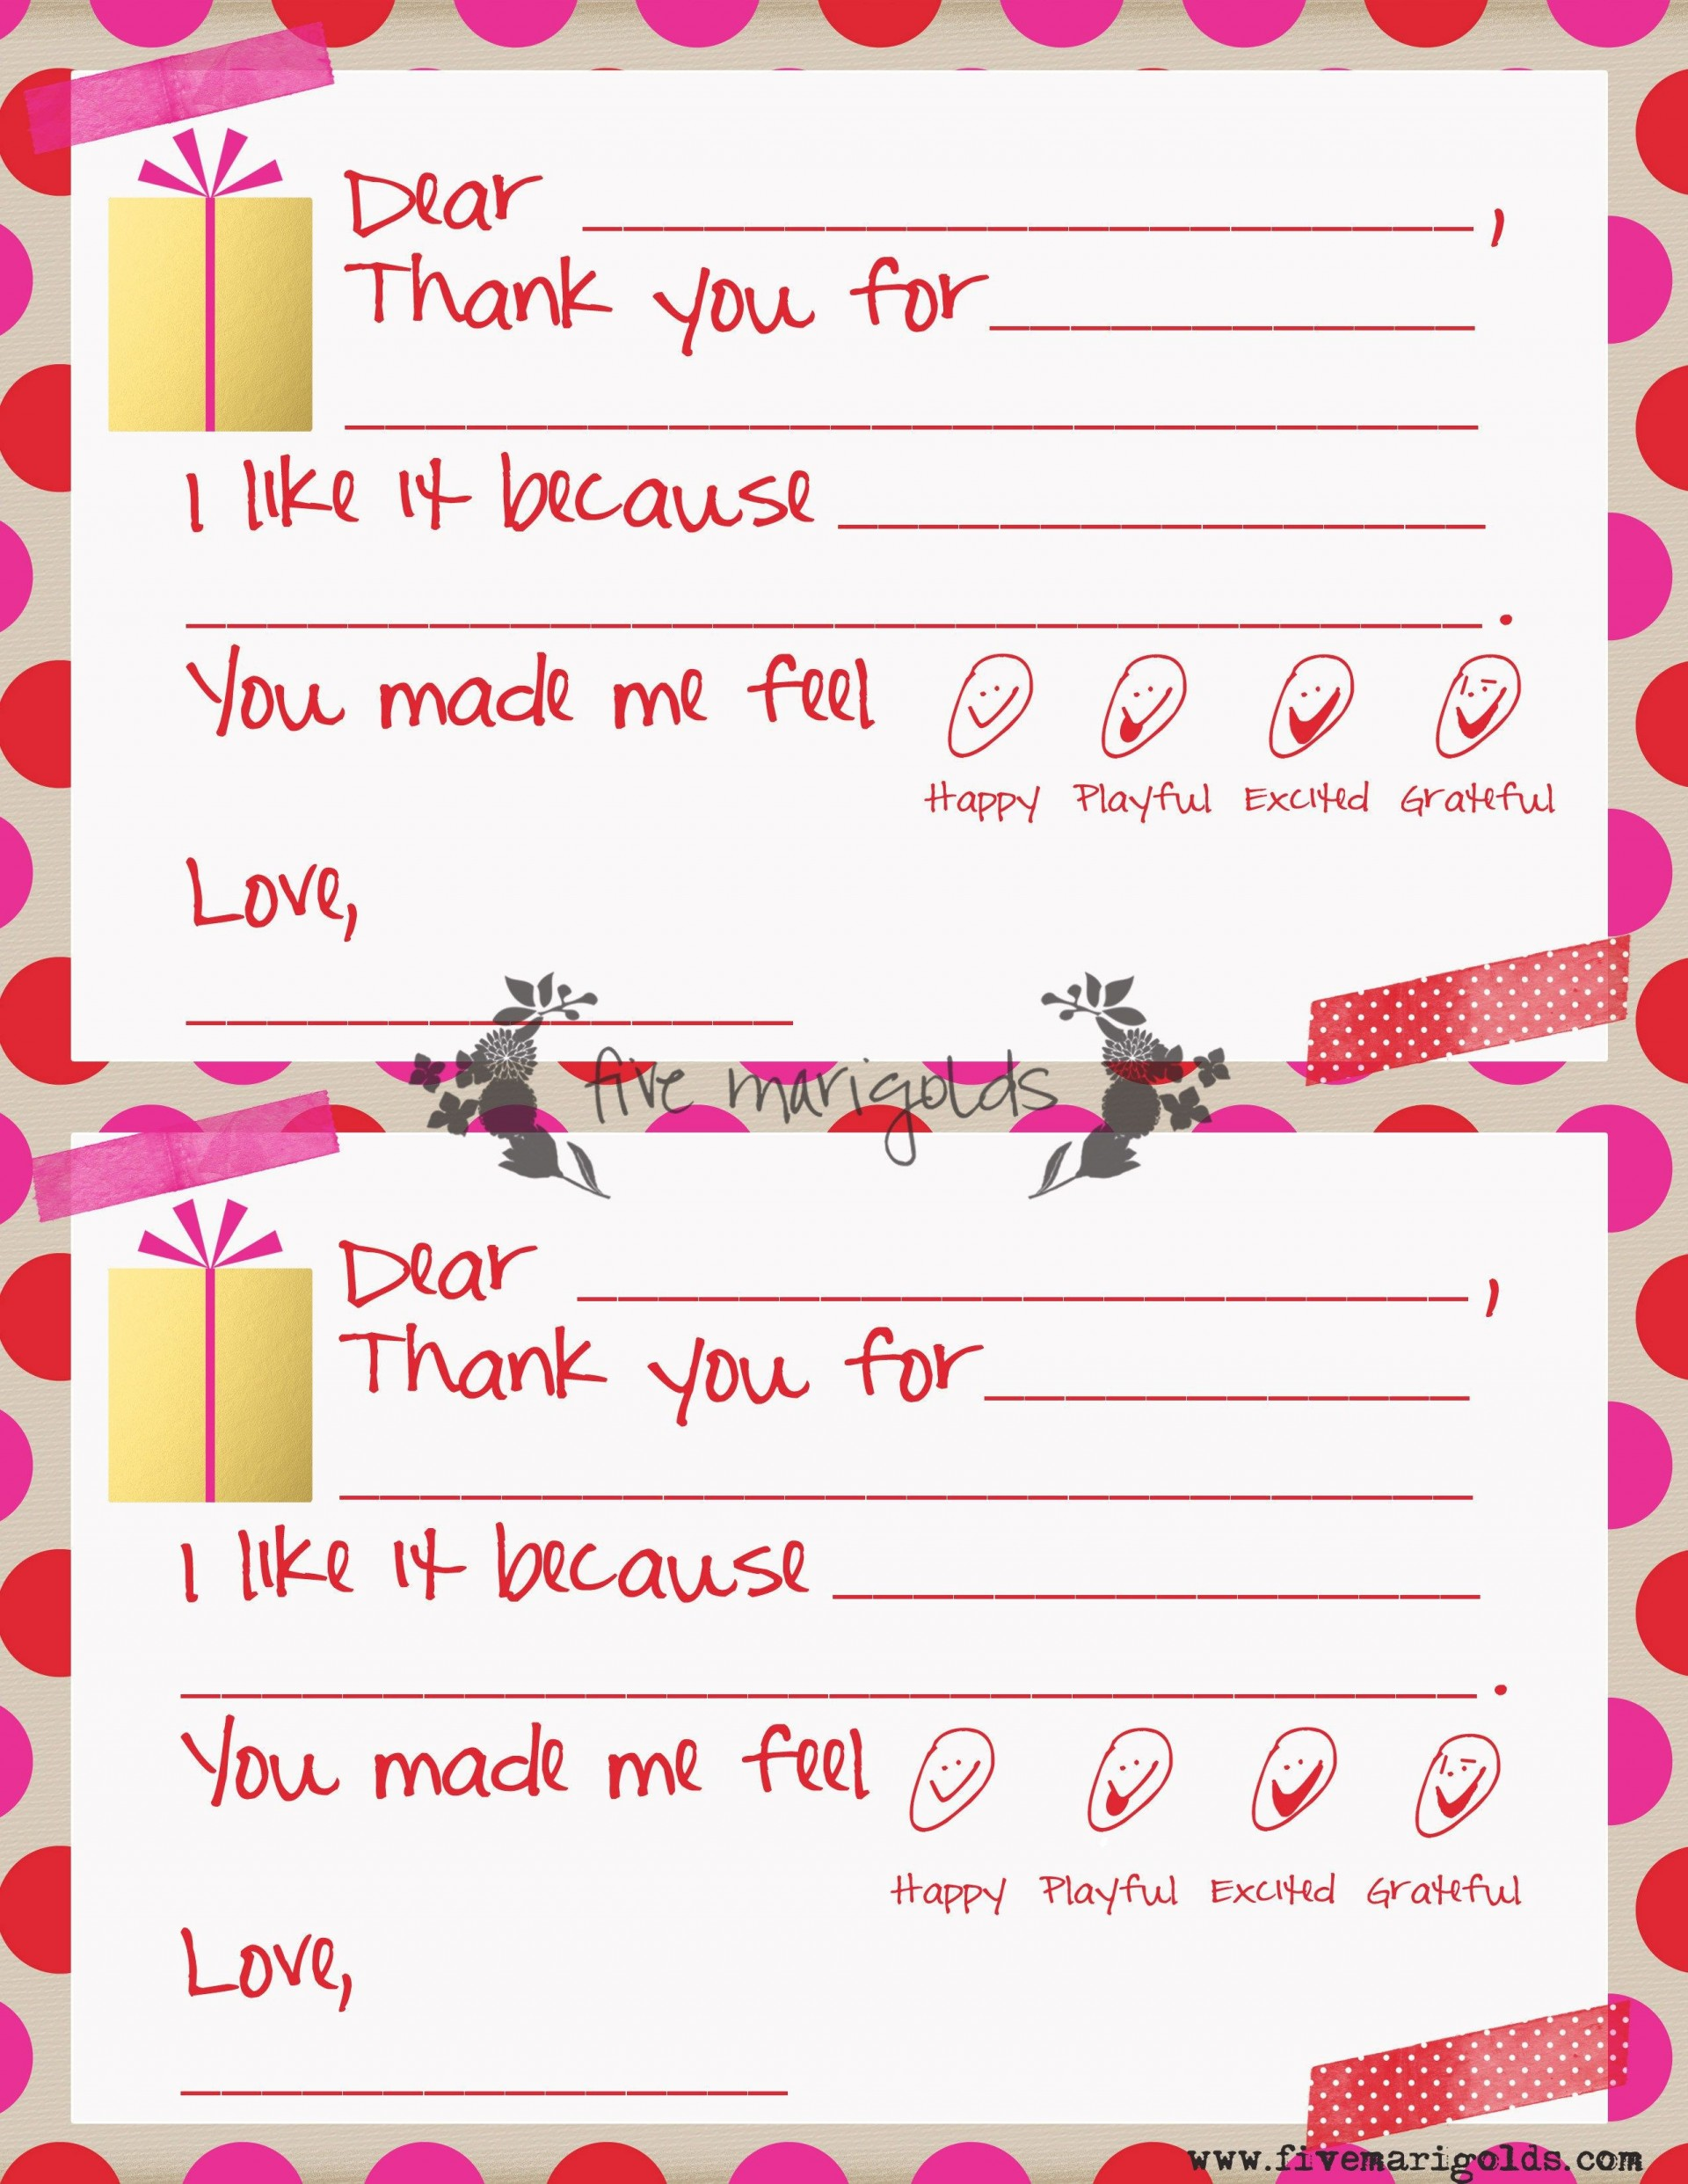 000 Unforgettable Thank You Note Template For Kid Highest Clarity  Kids Child Pdf Letter1920